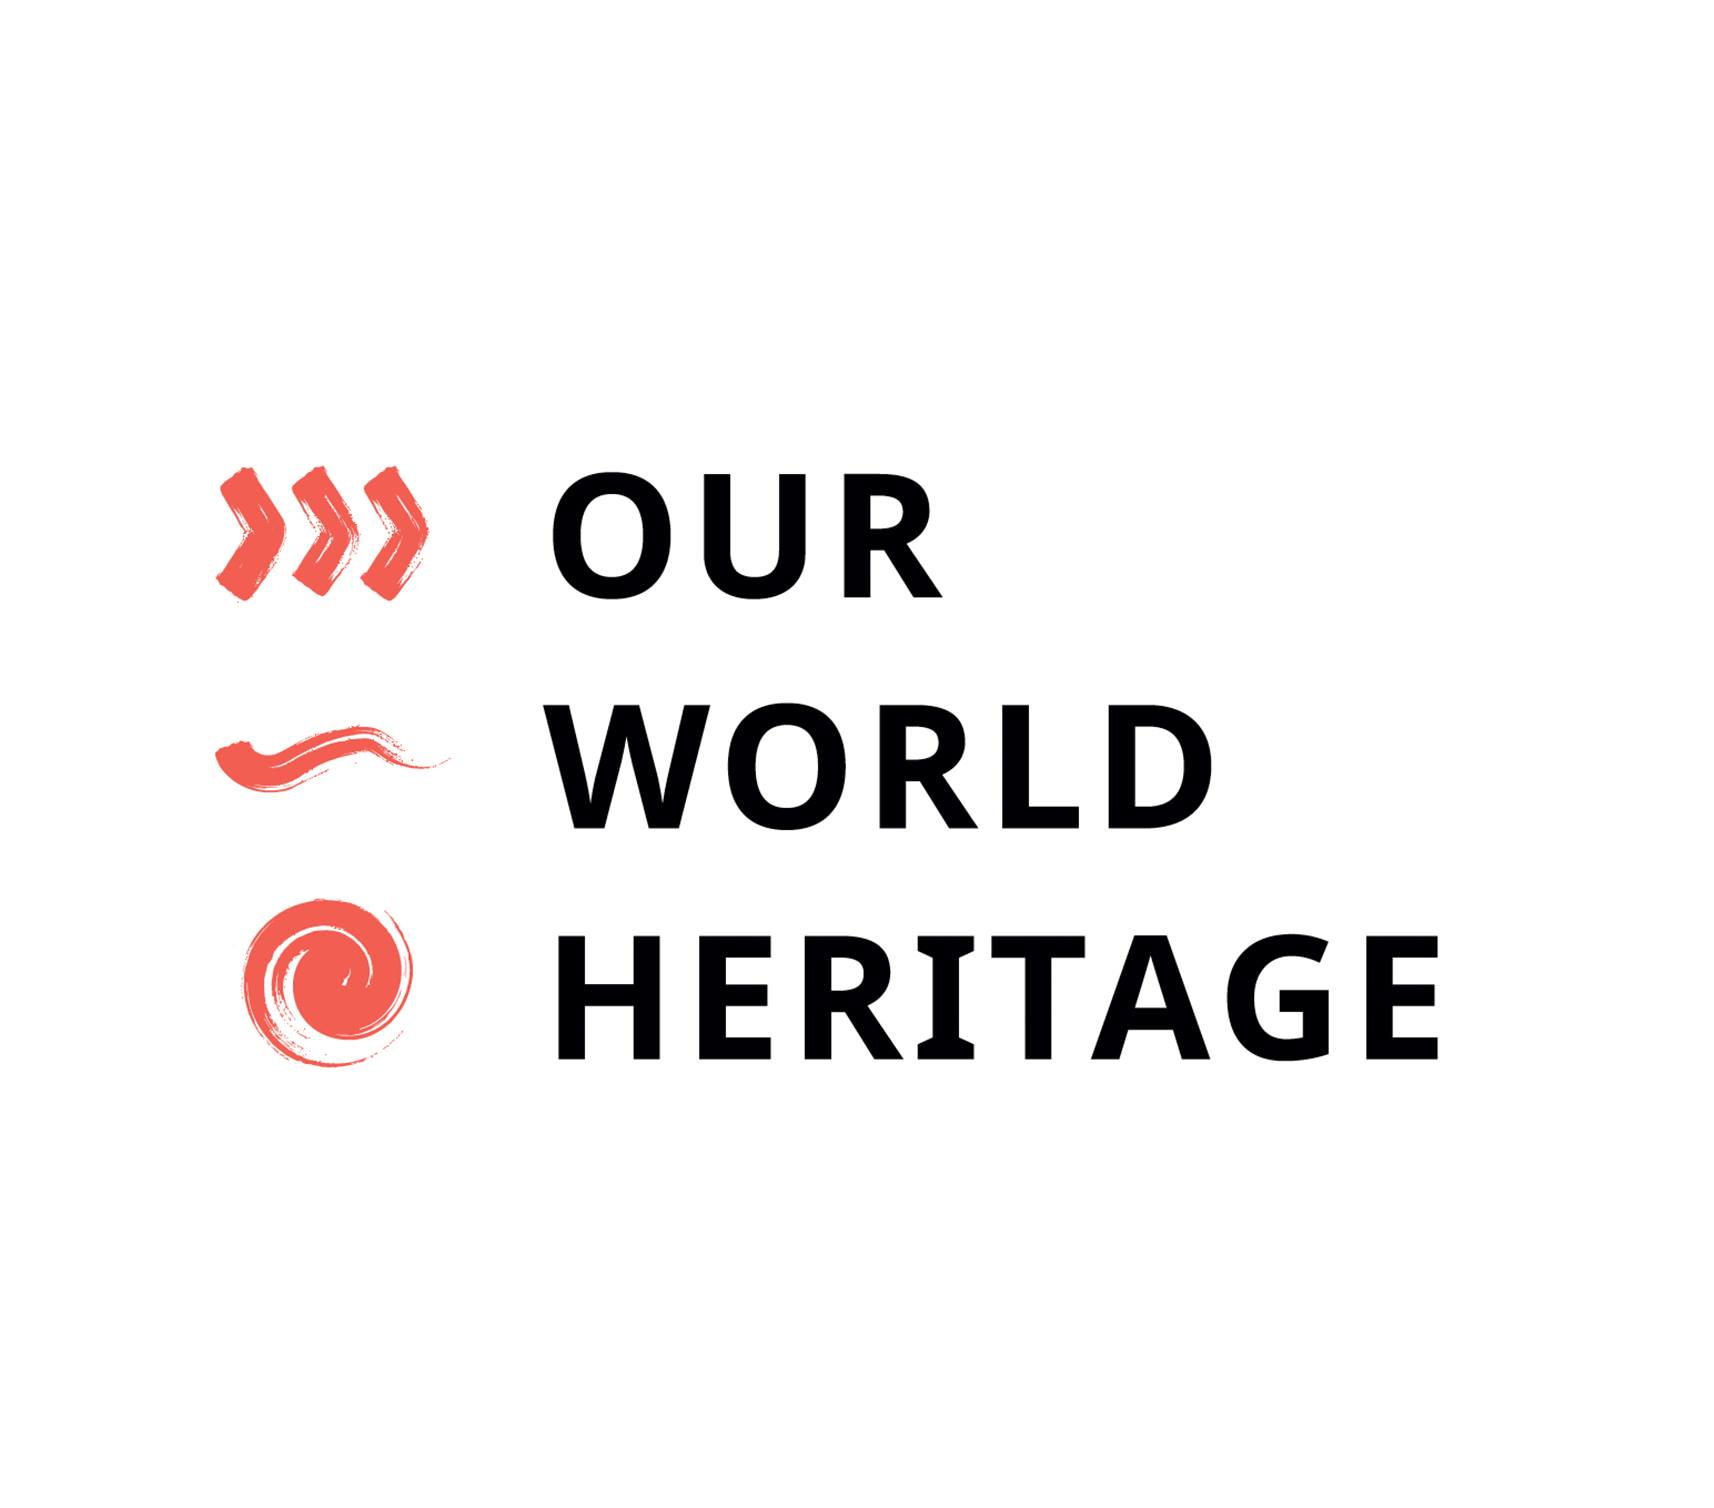 OUR WORLD HERITAGE: Heritage economics – evidence based innovative practices